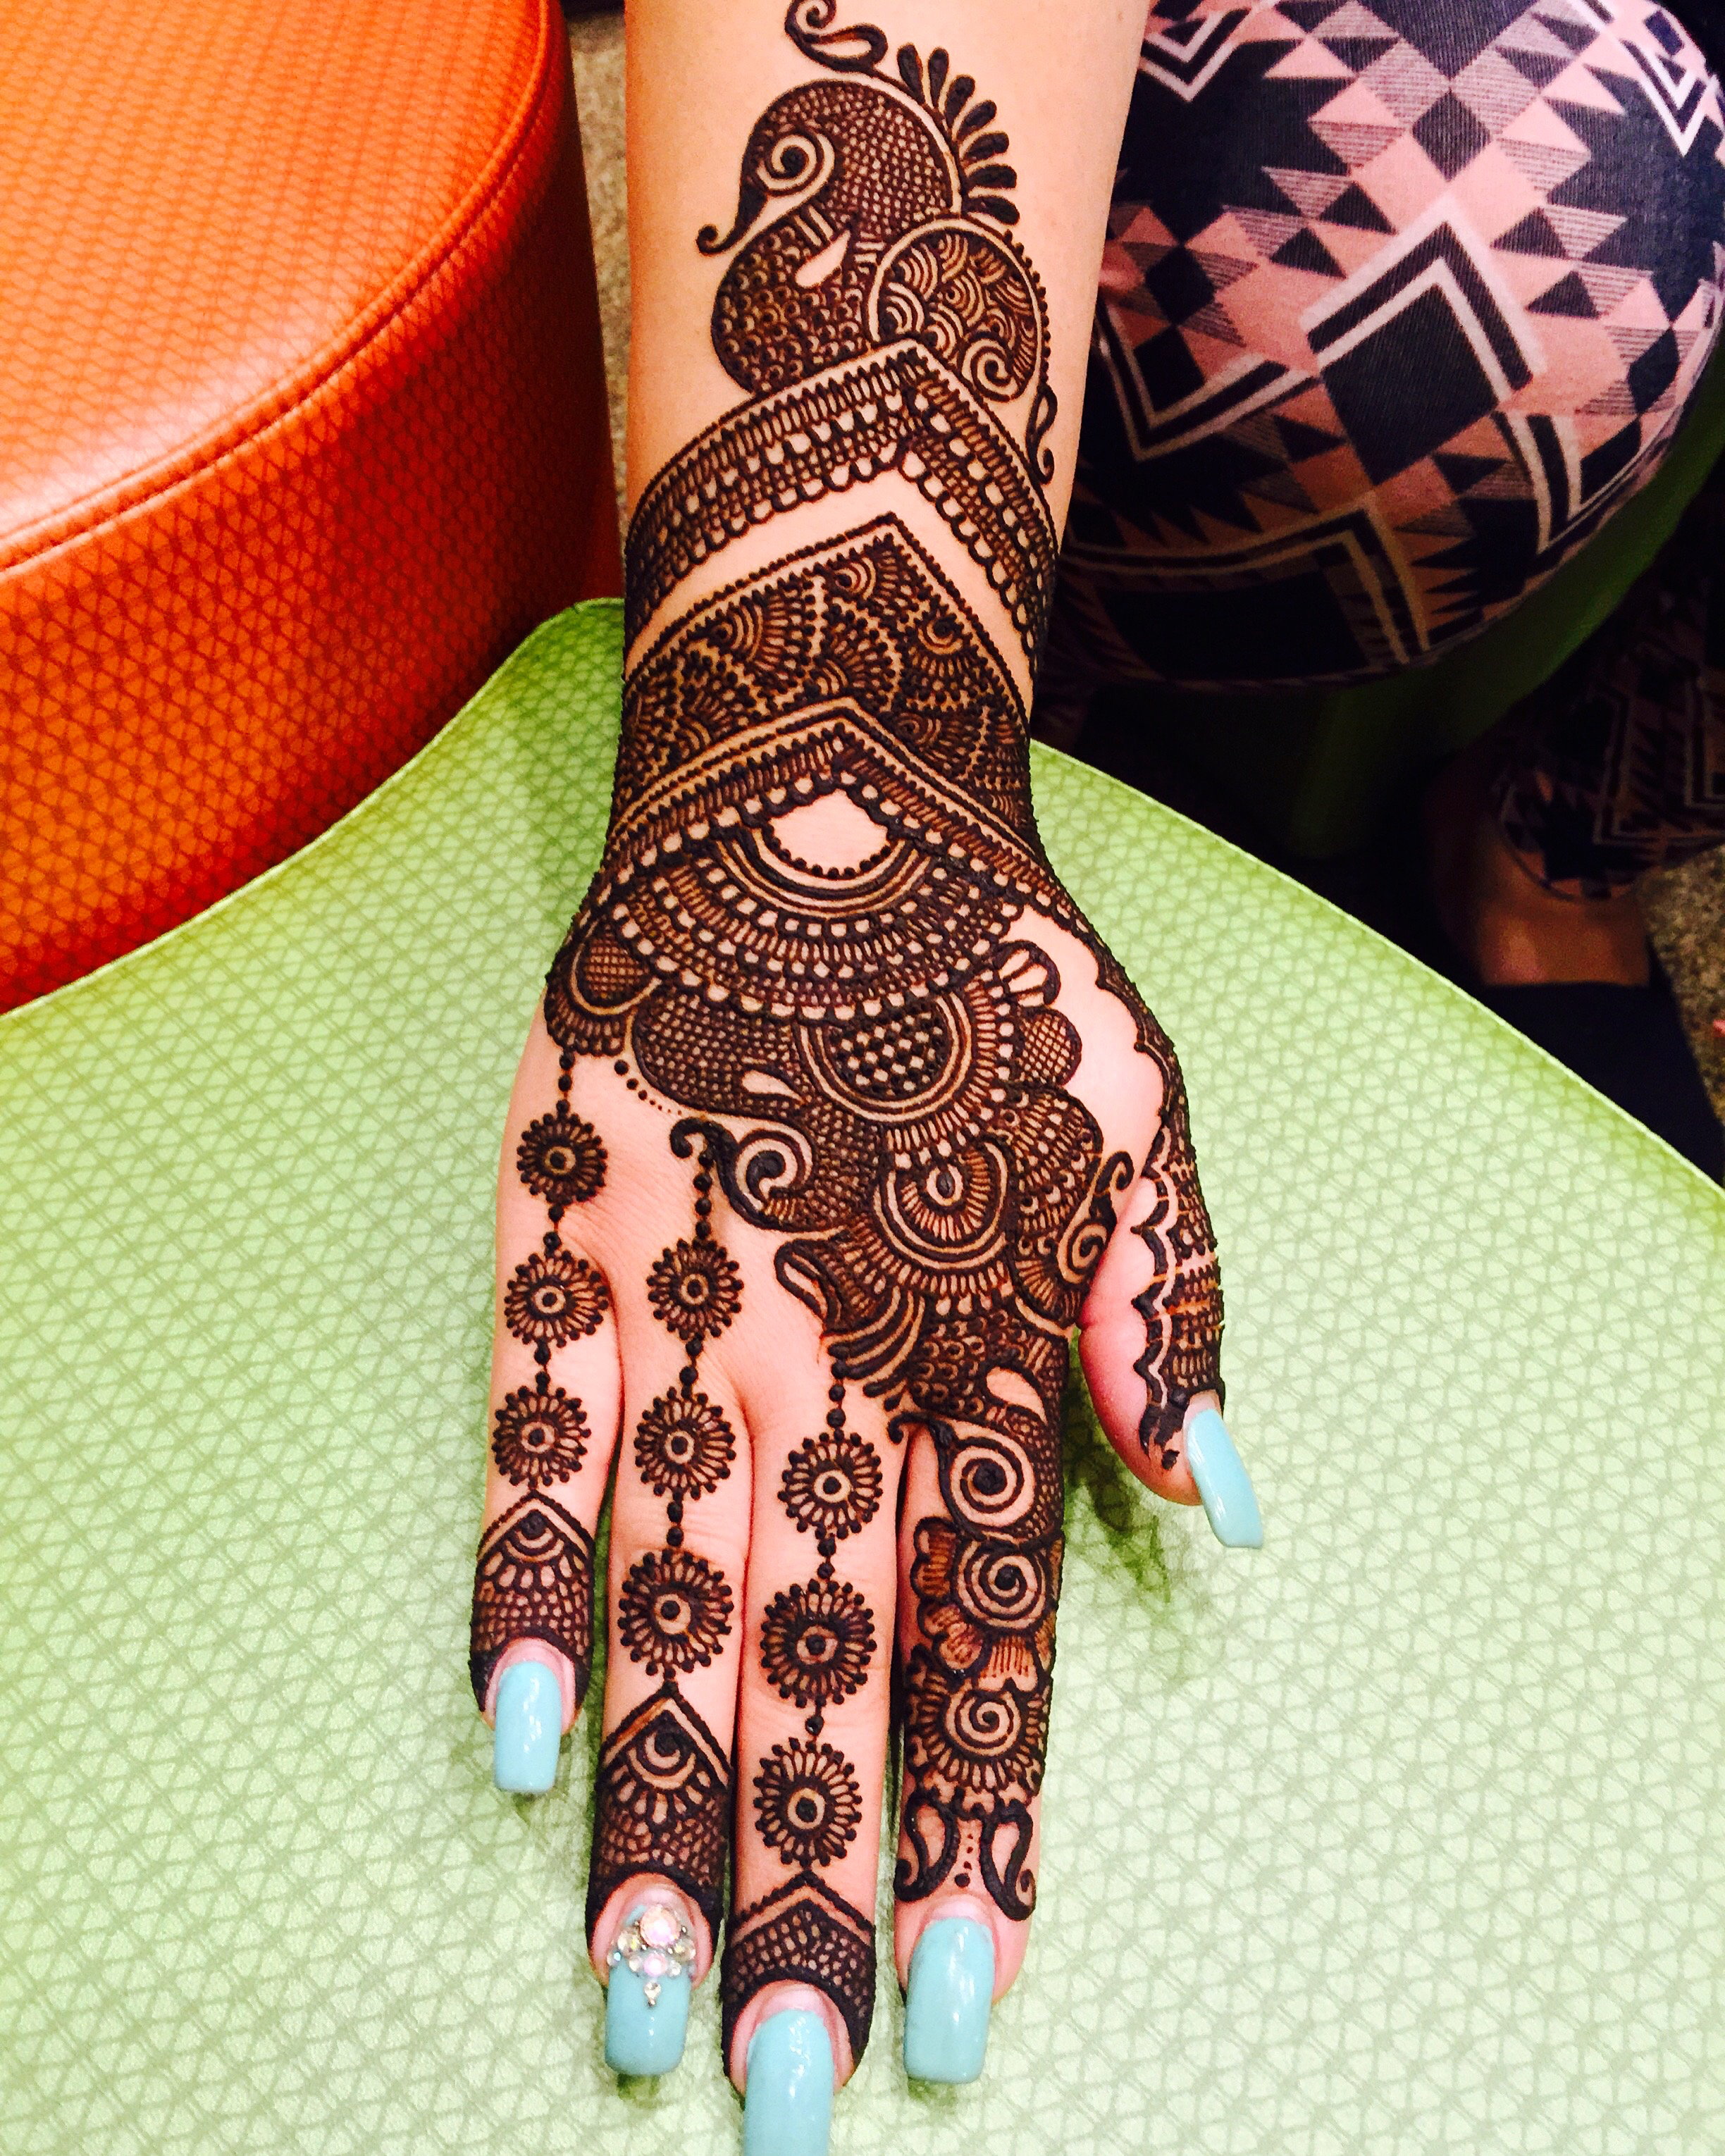 Indian Motifs, Peacocks And Bridal Henna With Maaz: May 14